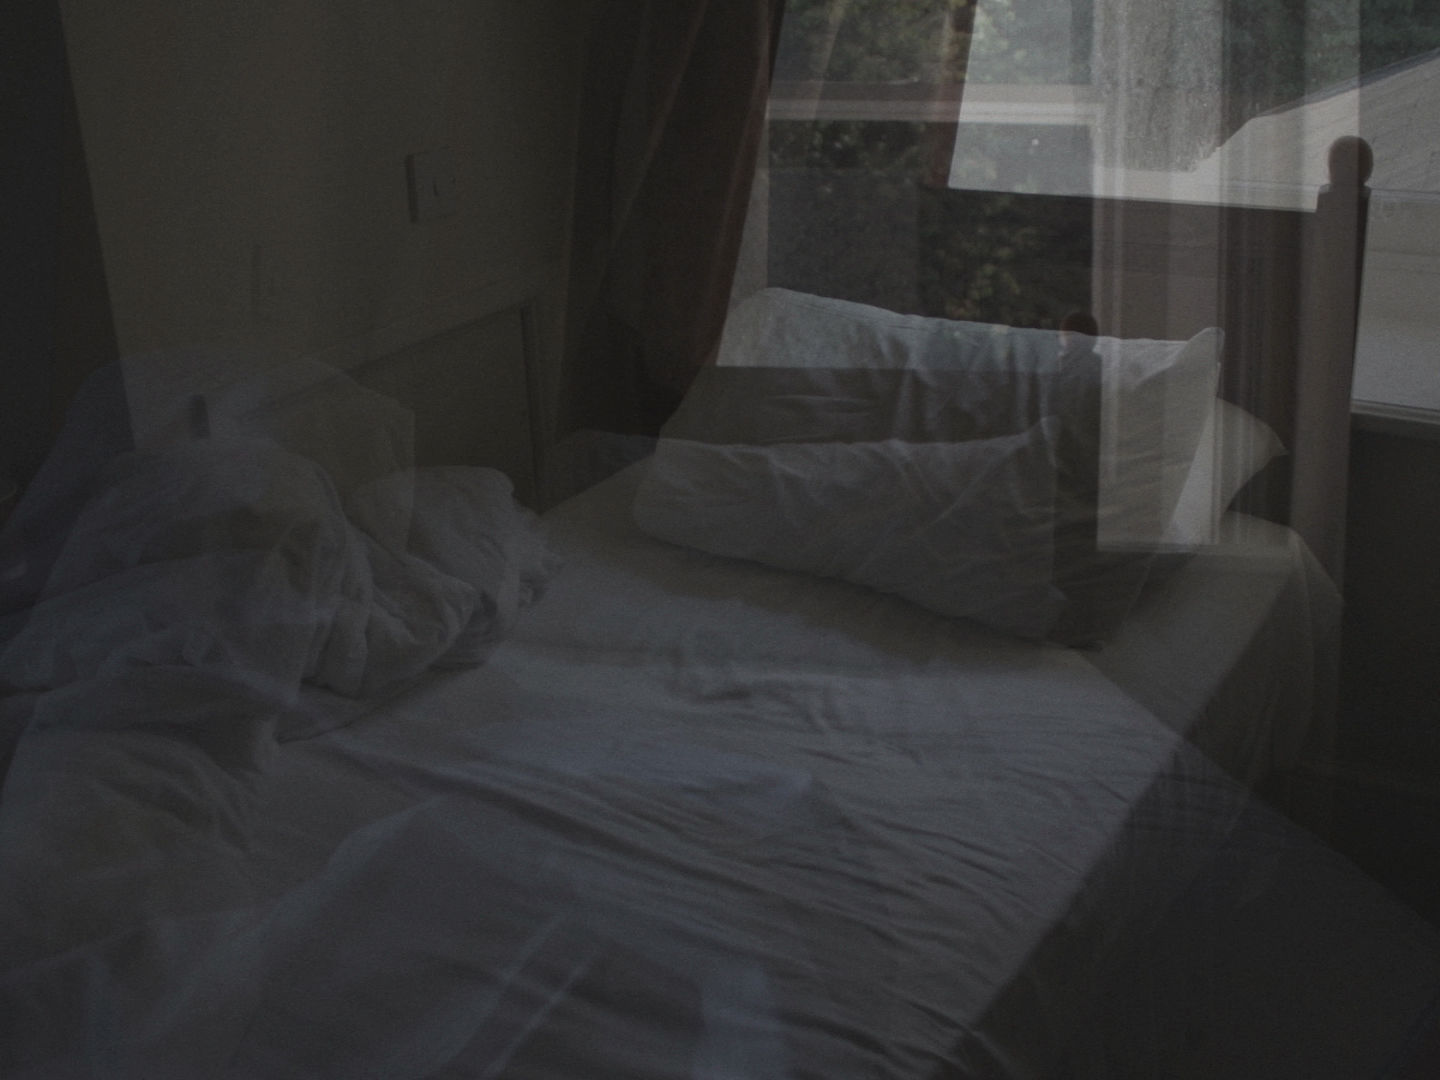 Still from the poetry film Morning. Two shots of a bed are blended together to create a wistful shot.